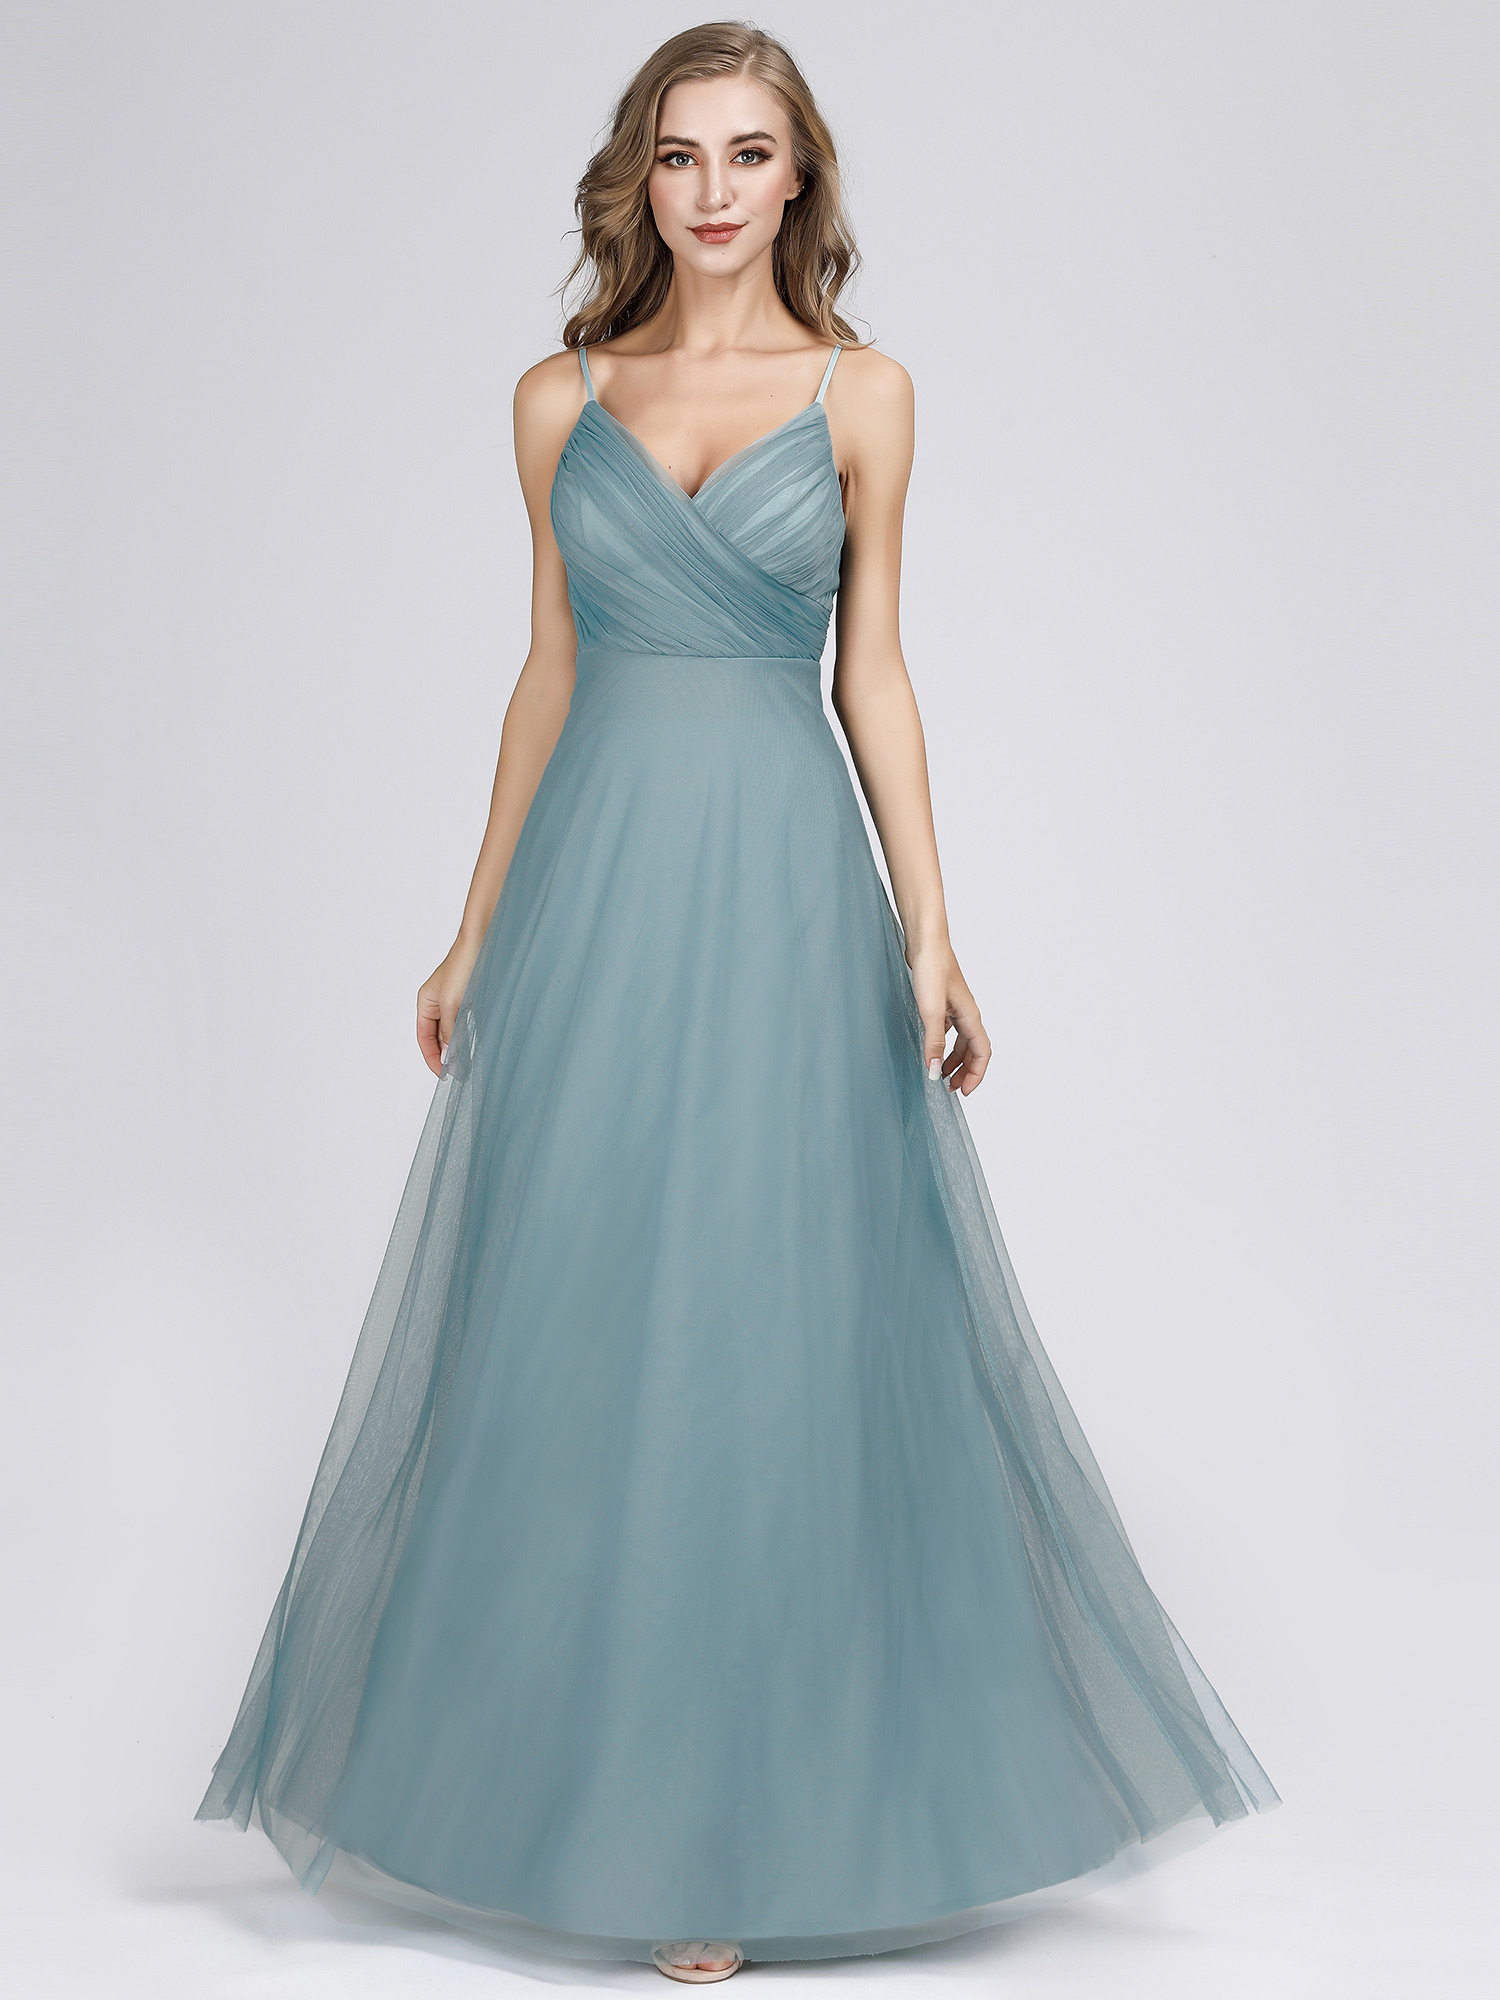 Ever-pretty-US-Formal-Evening-Prom-Gown-A-line-Cocktail-Homecoming-Party-Dresses thumbnail 12